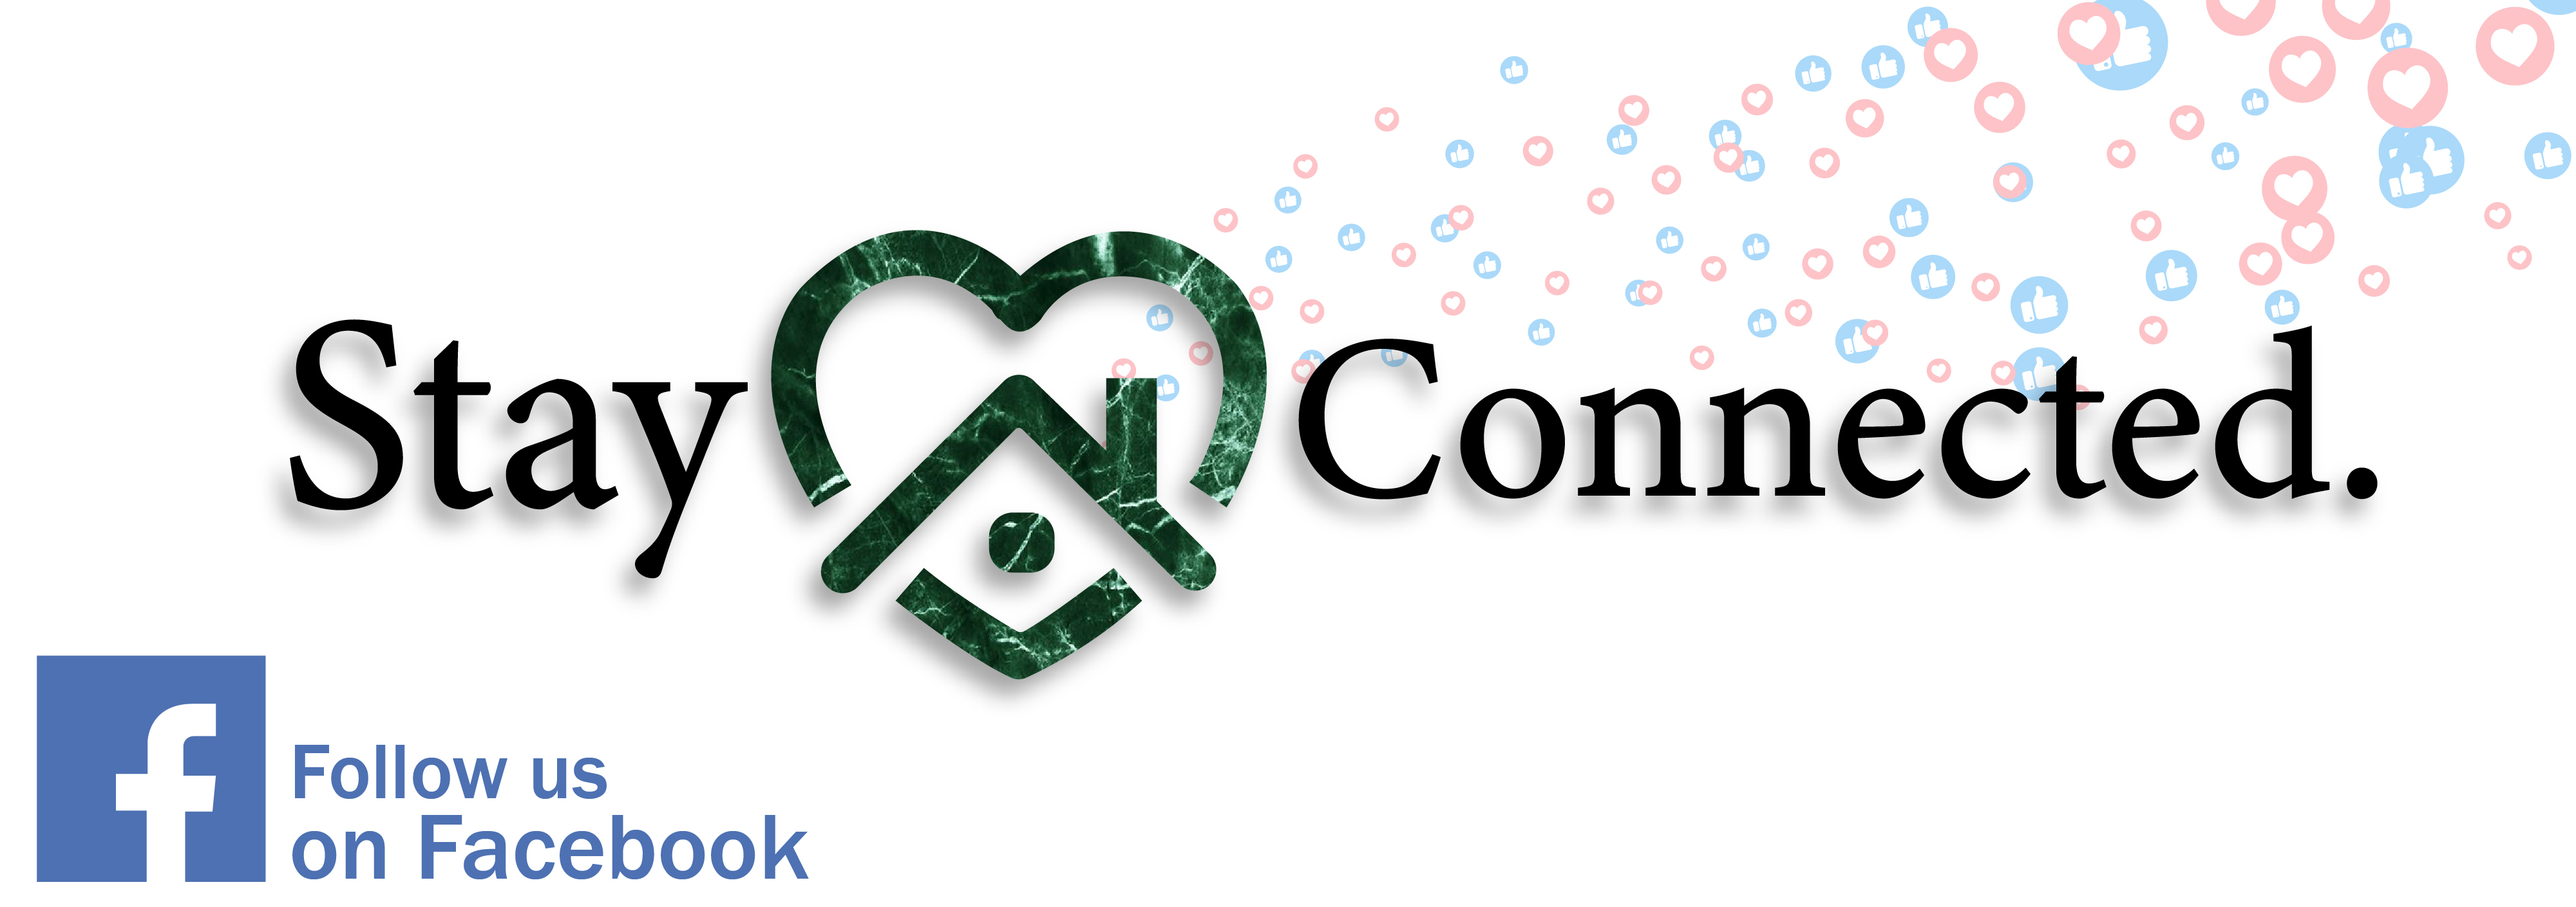 Credit Concepts Is Keeping It's Valued Community Connected Online.